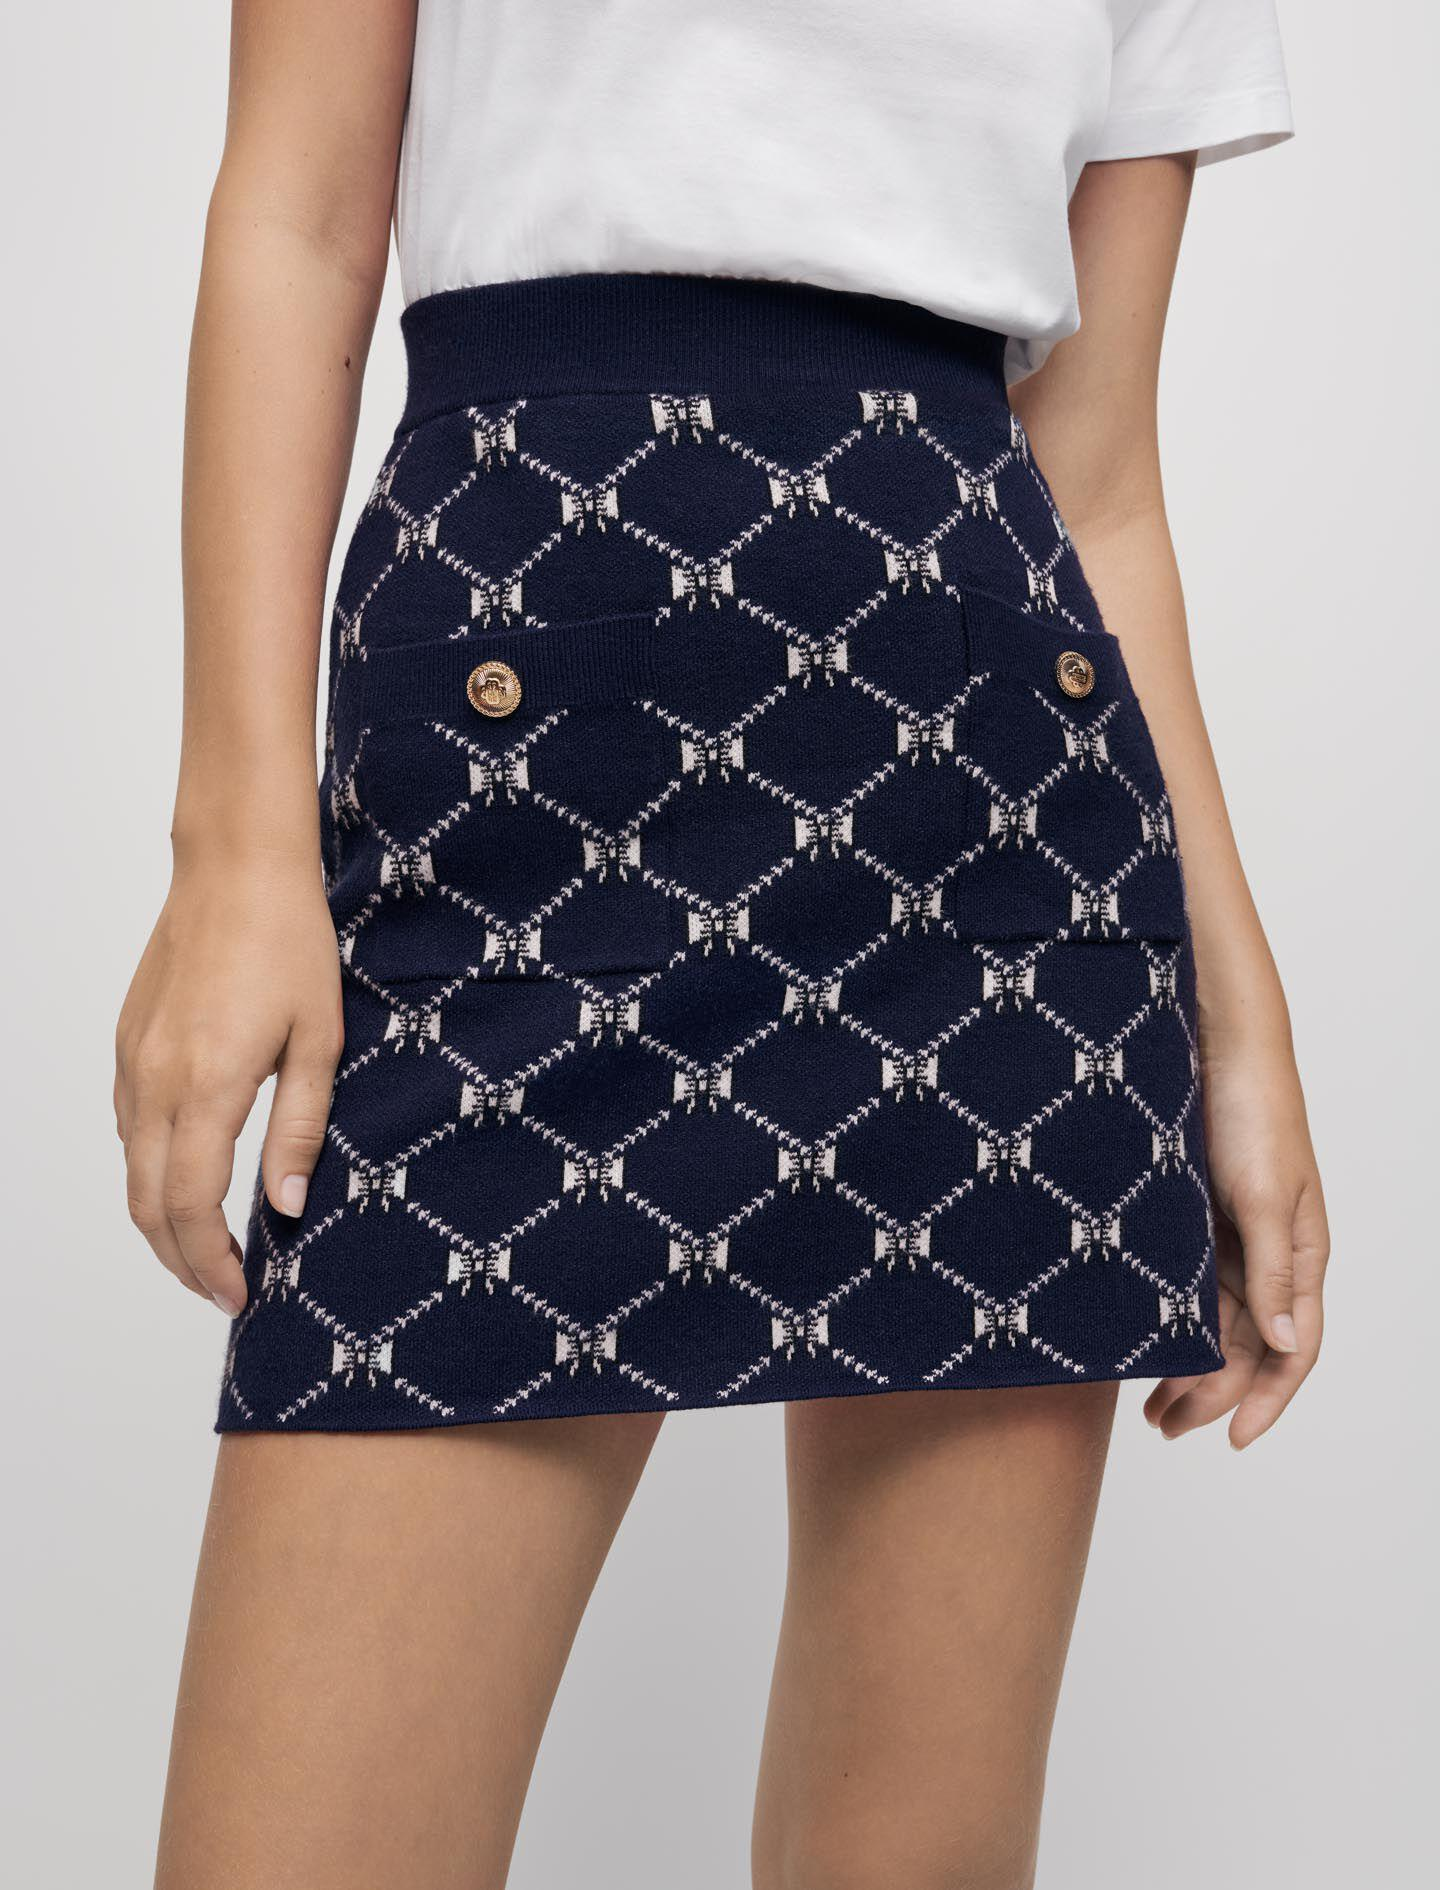 JACQUARD KNIT SKIRT WITH BOWS 2